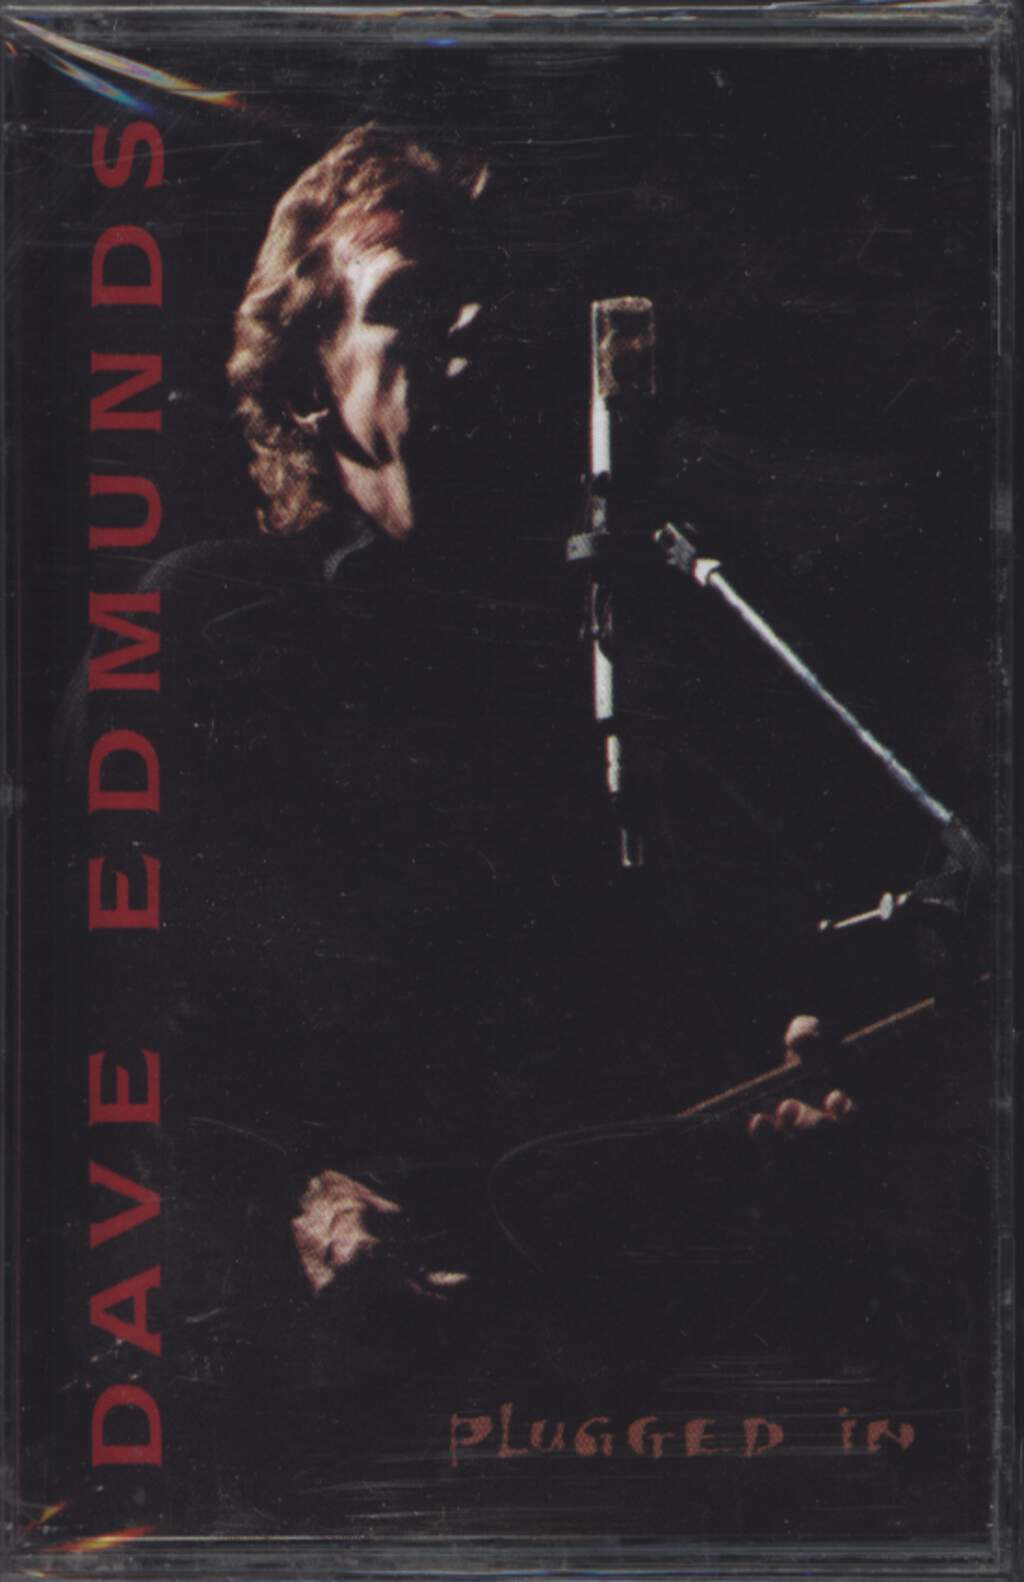 Dave Edmunds: Plugged In, Compact Cassette